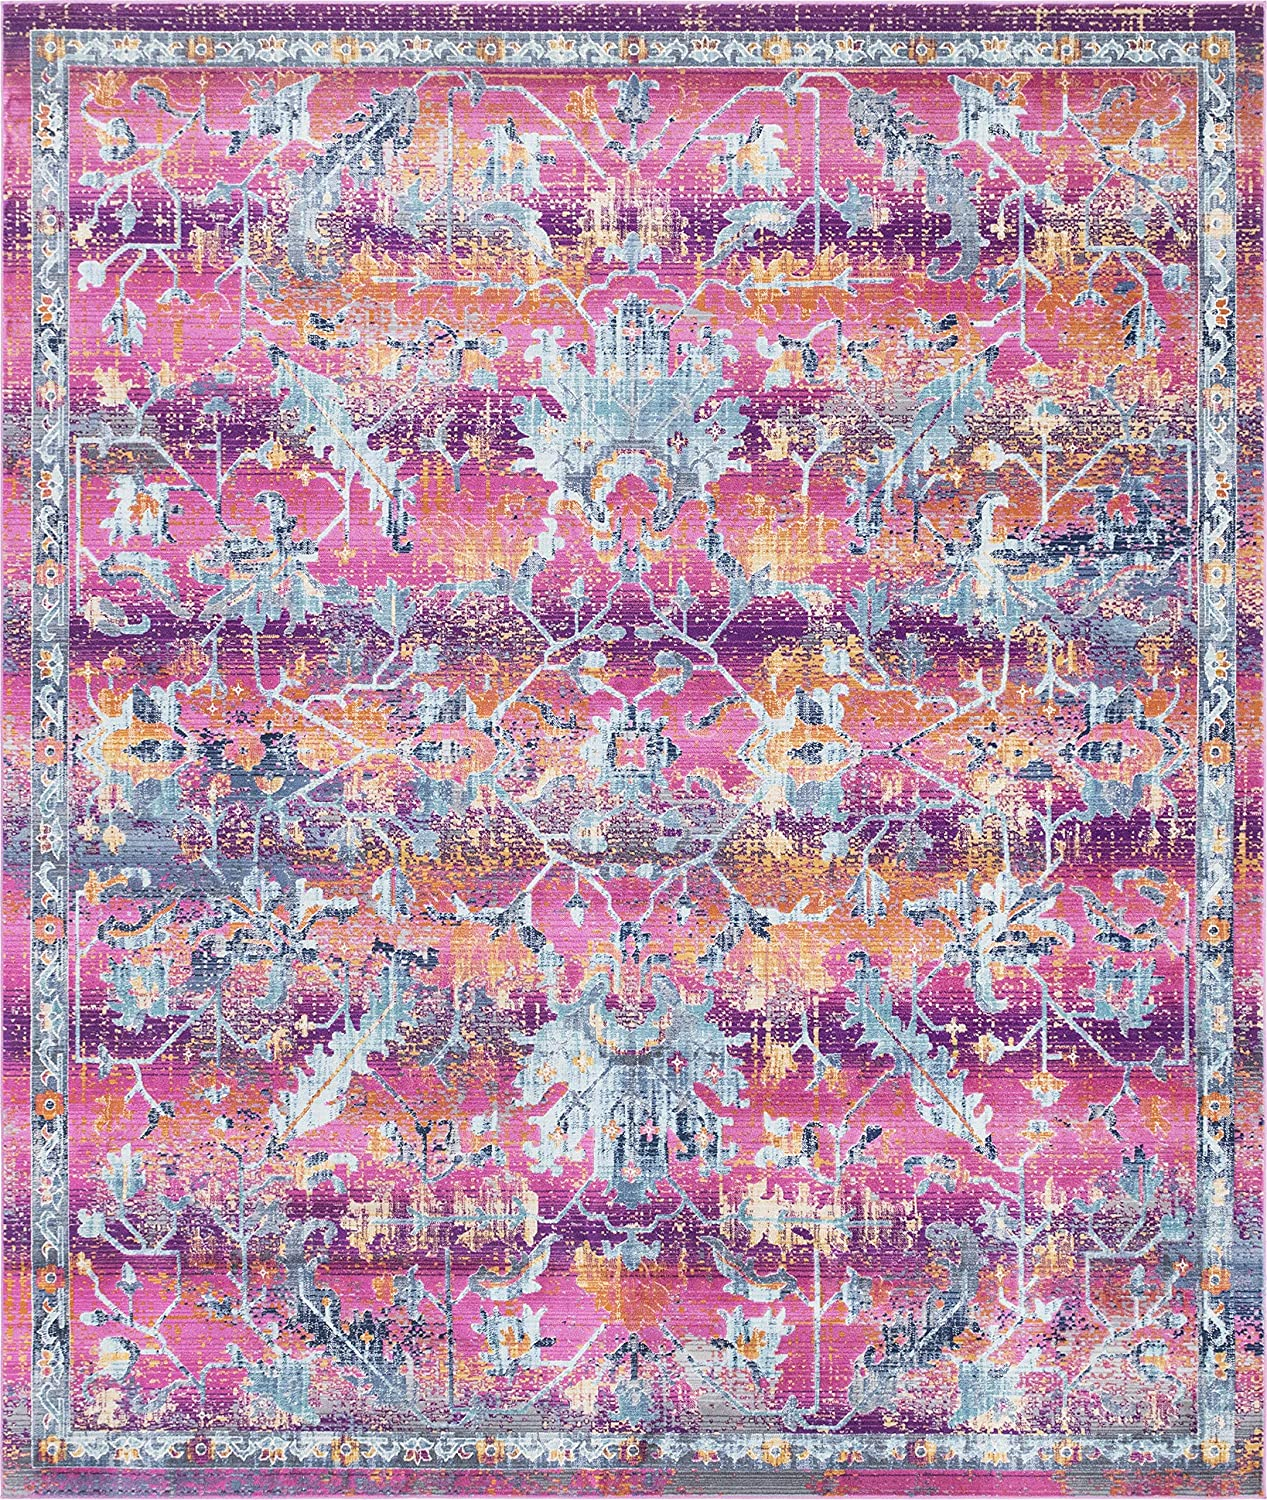 Rugs.com Budapest Collection Area Rug – 8X10 Fuchsia Low-Pile Rug Perfect for Living Rooms, Large Dining Rooms, Open Floorplans